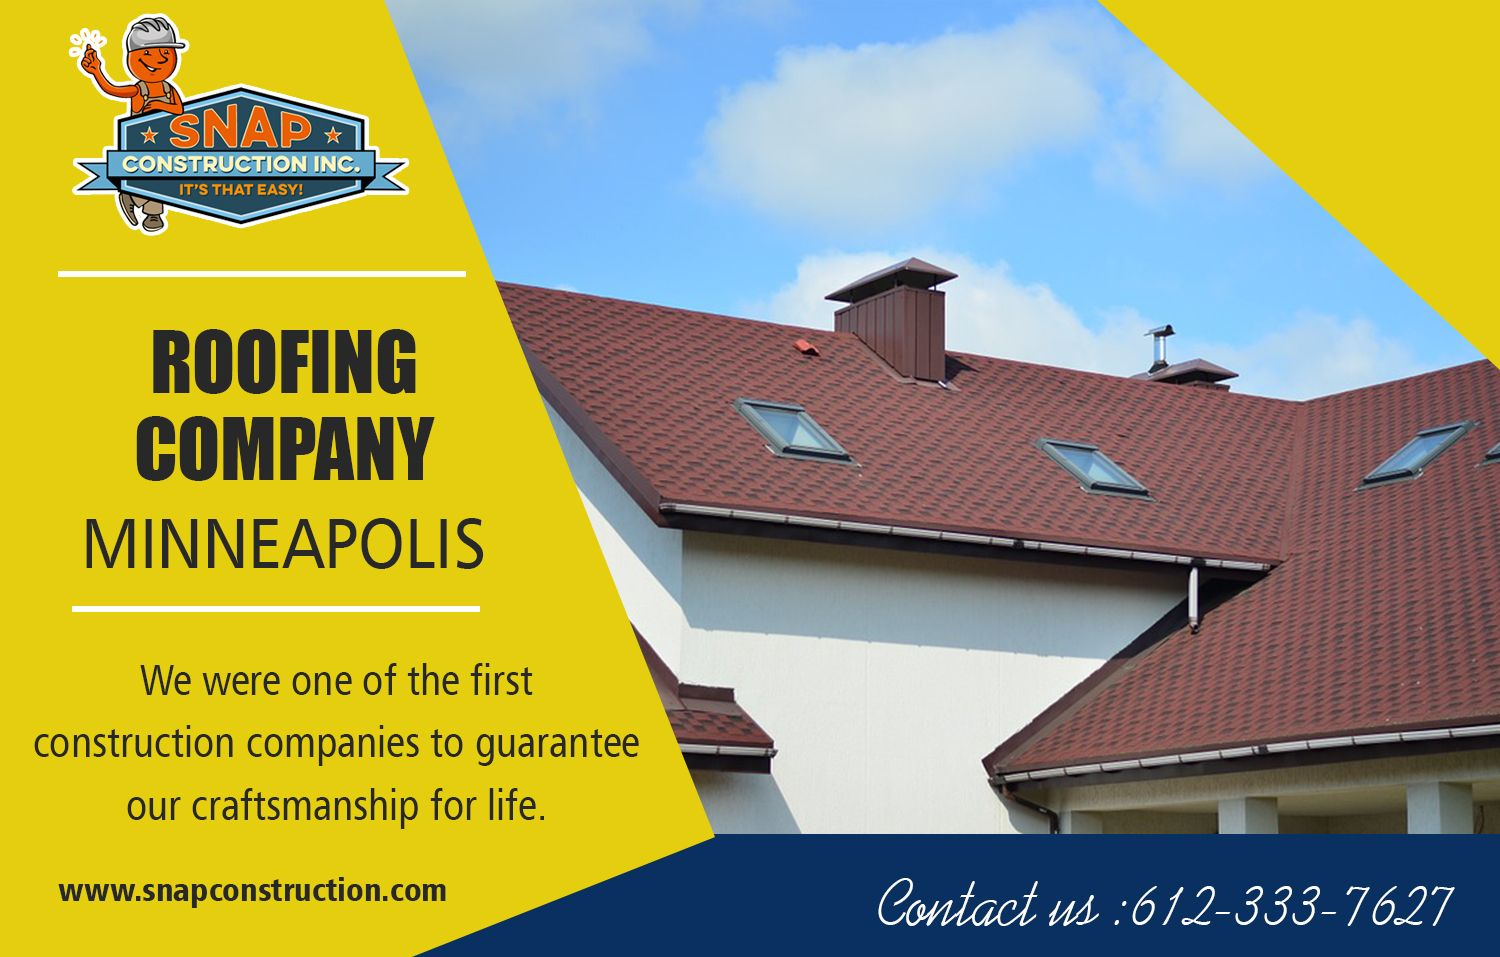 Roofing Company Minneapolis Roofing companies, Best